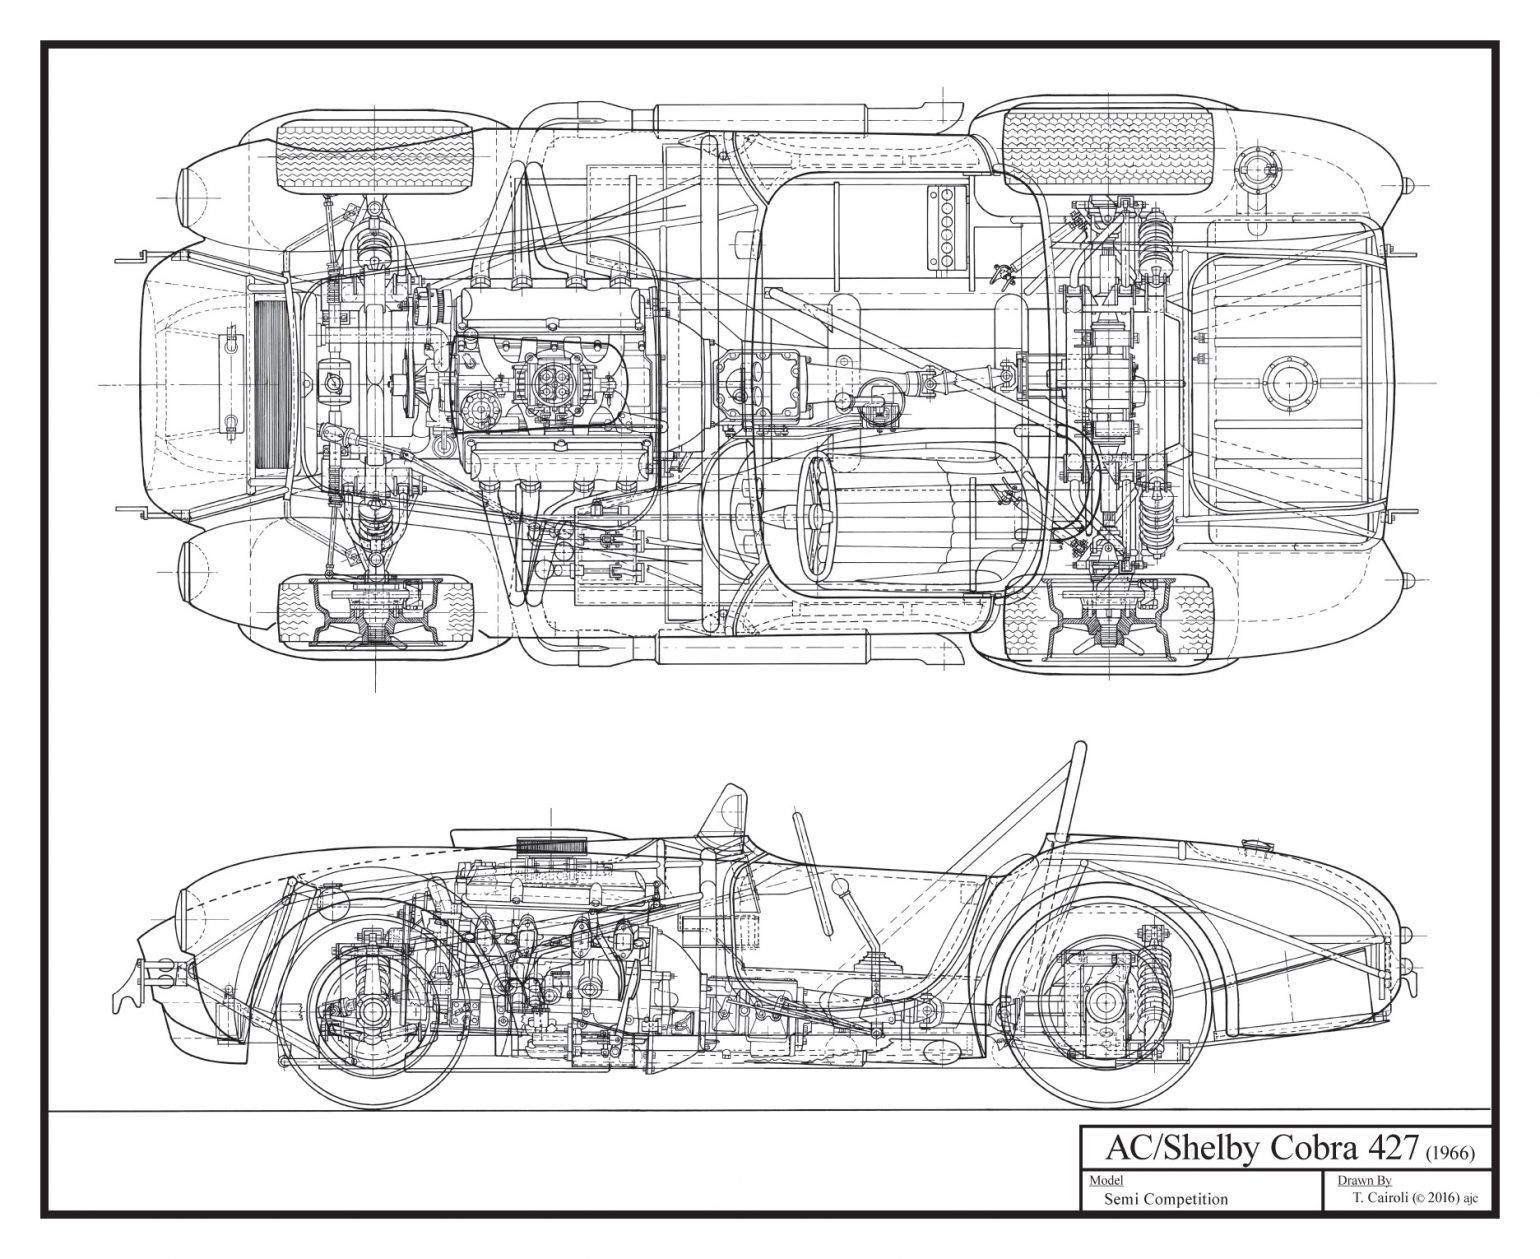 hight resolution of tony cairoli has completed his 1966 shelby cobra 427 schematic all hand